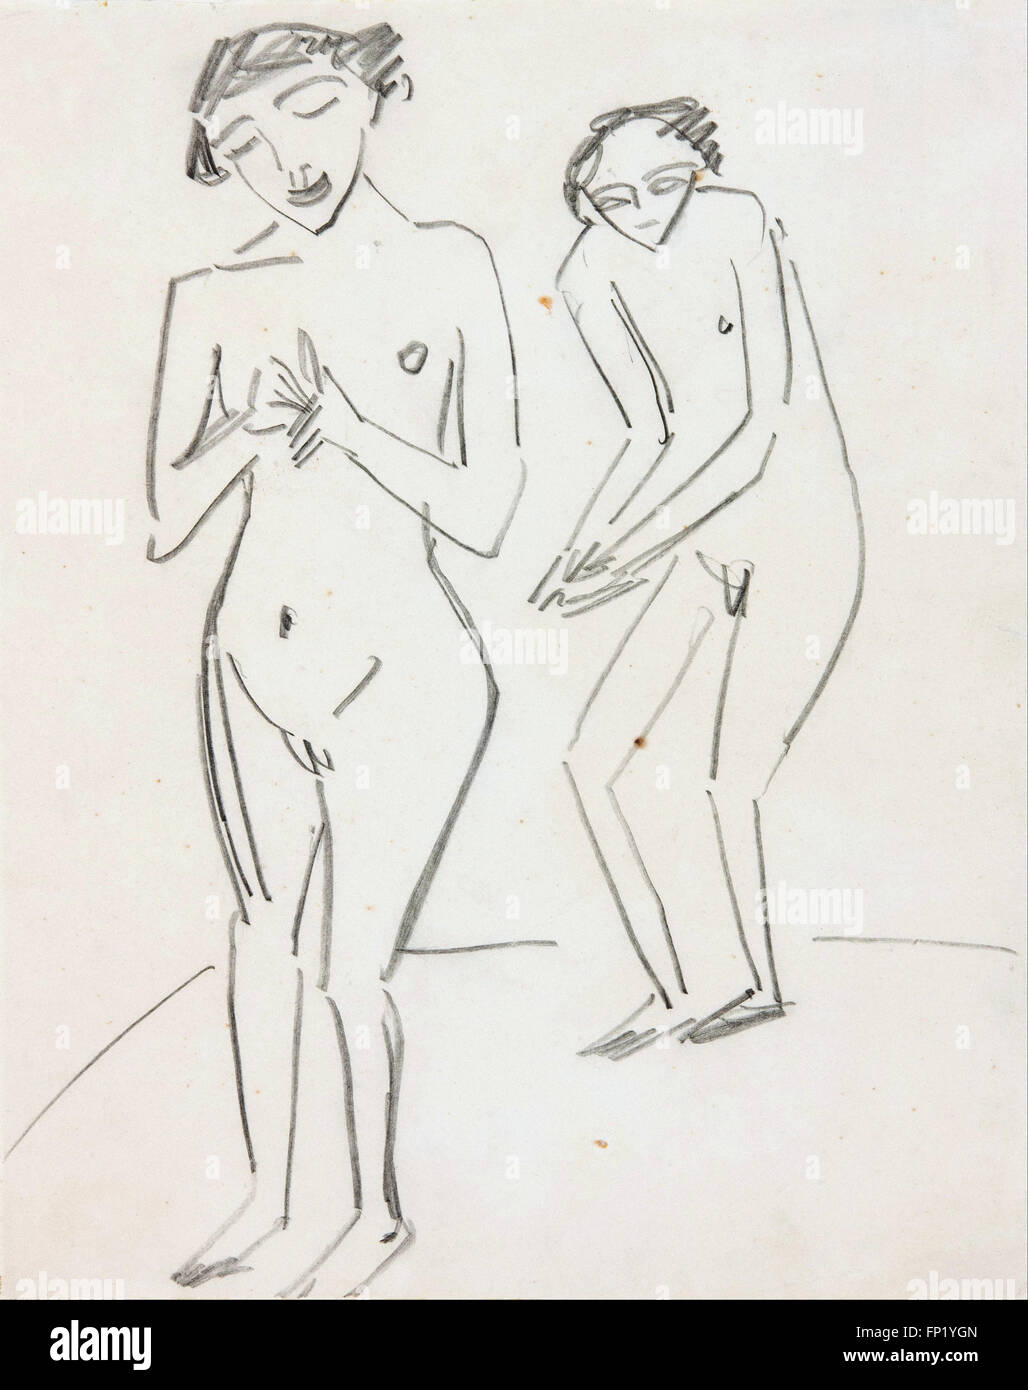 Ernst Ludwig Kirchner - Man and woman - Stock Image